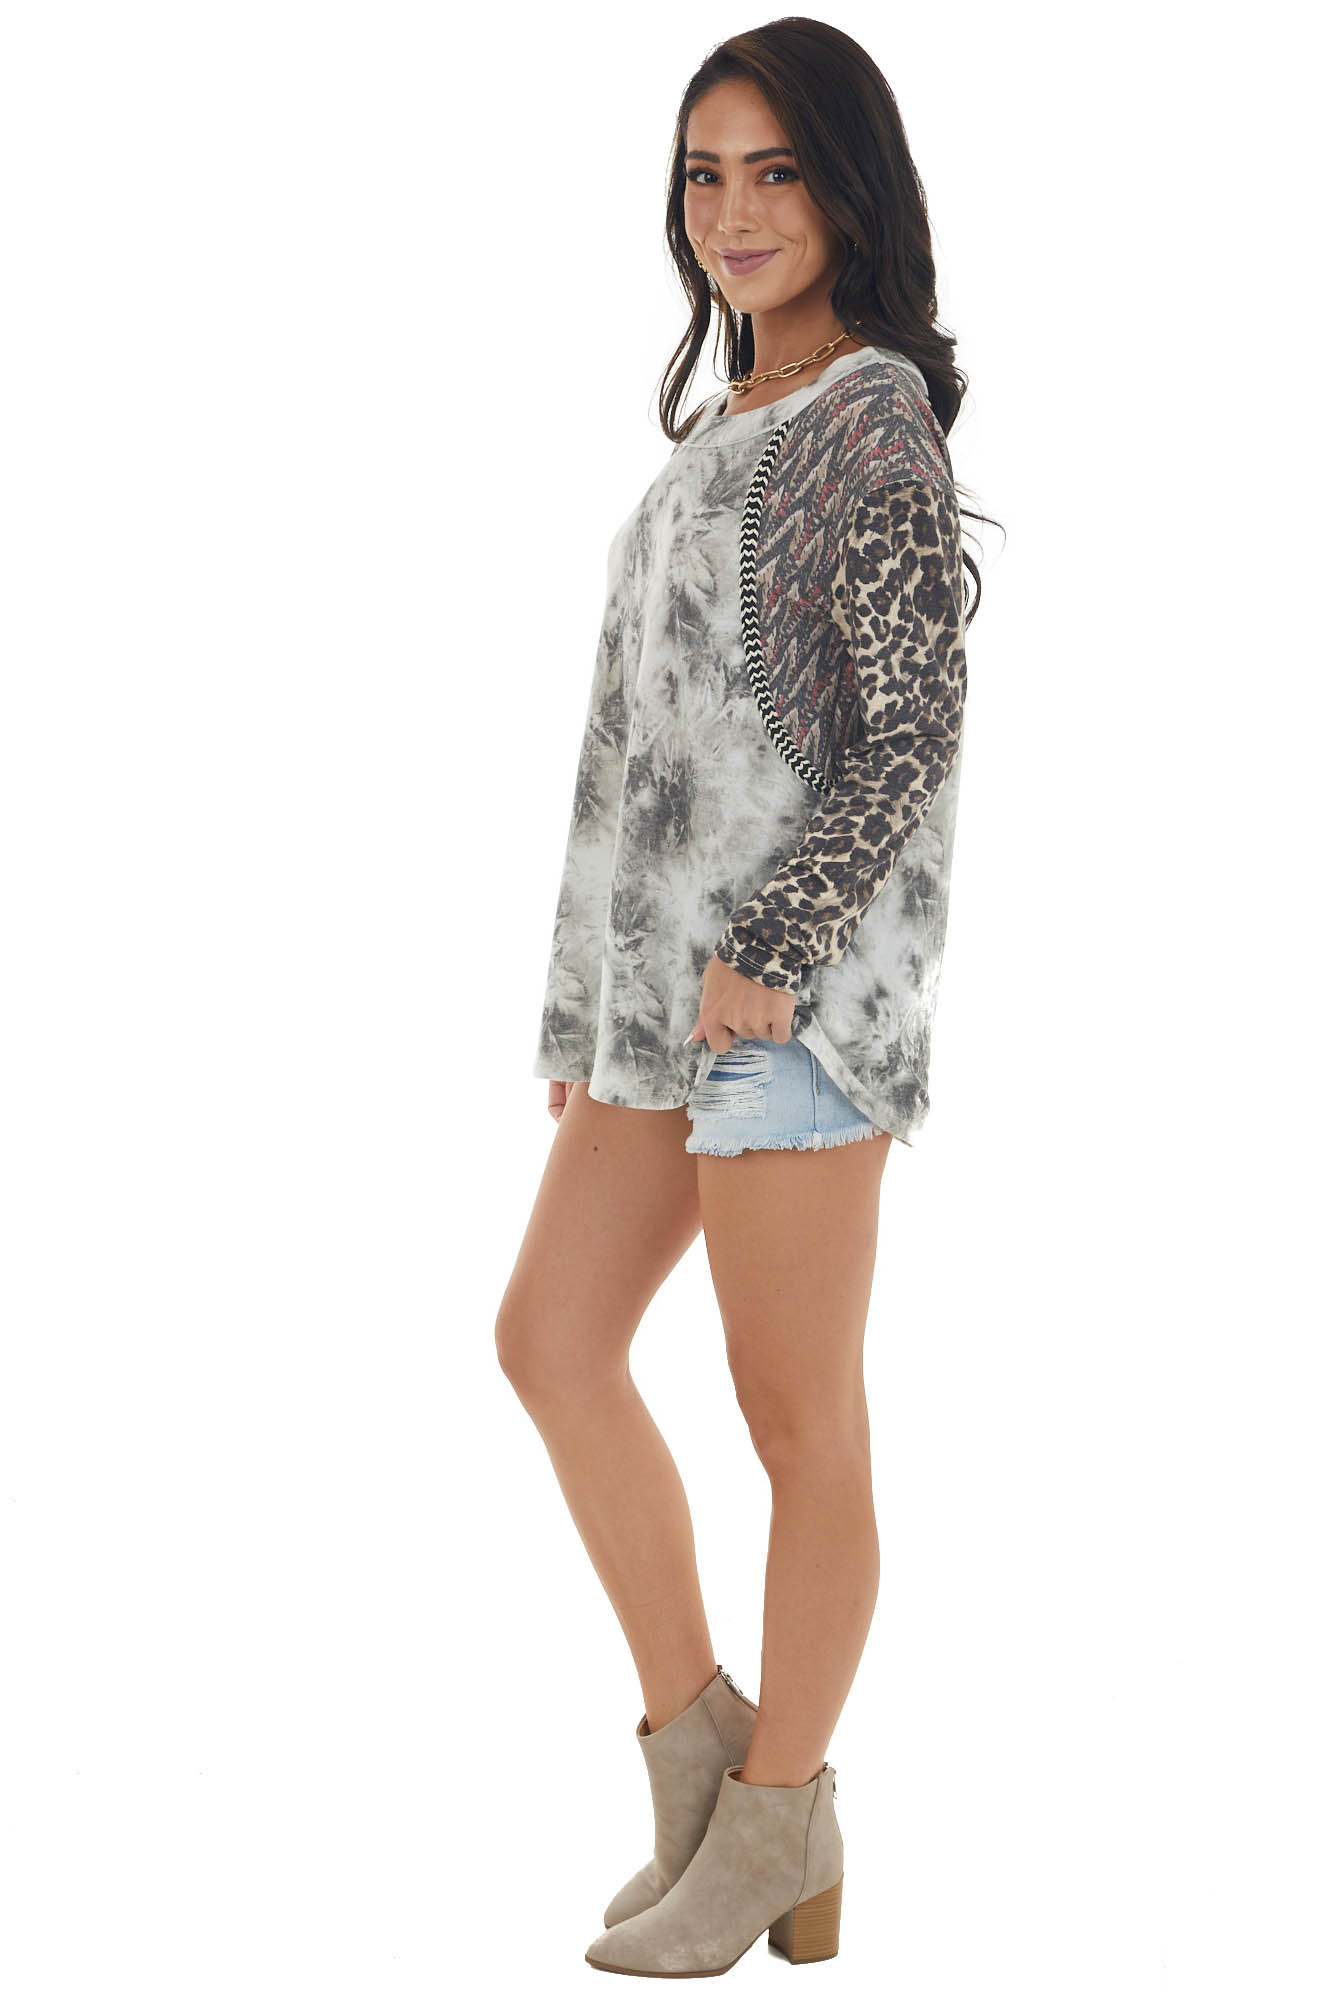 Ivory and Charcoal Tie Dye Top with Multiprint Long Sleeves